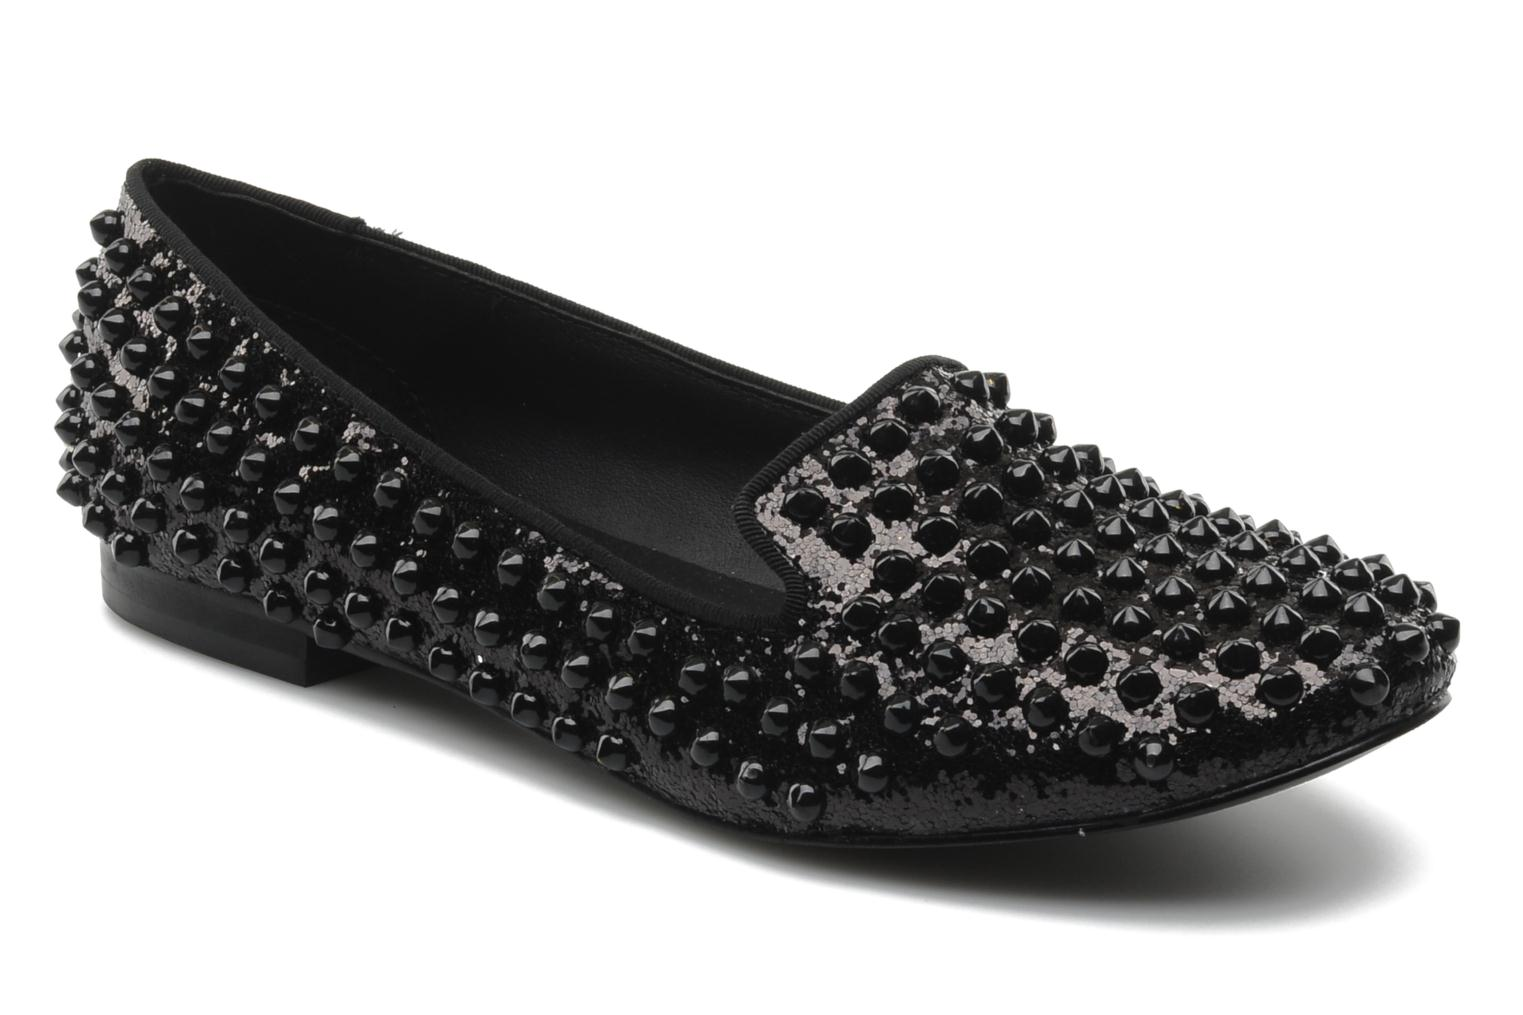 Studly Black with studs